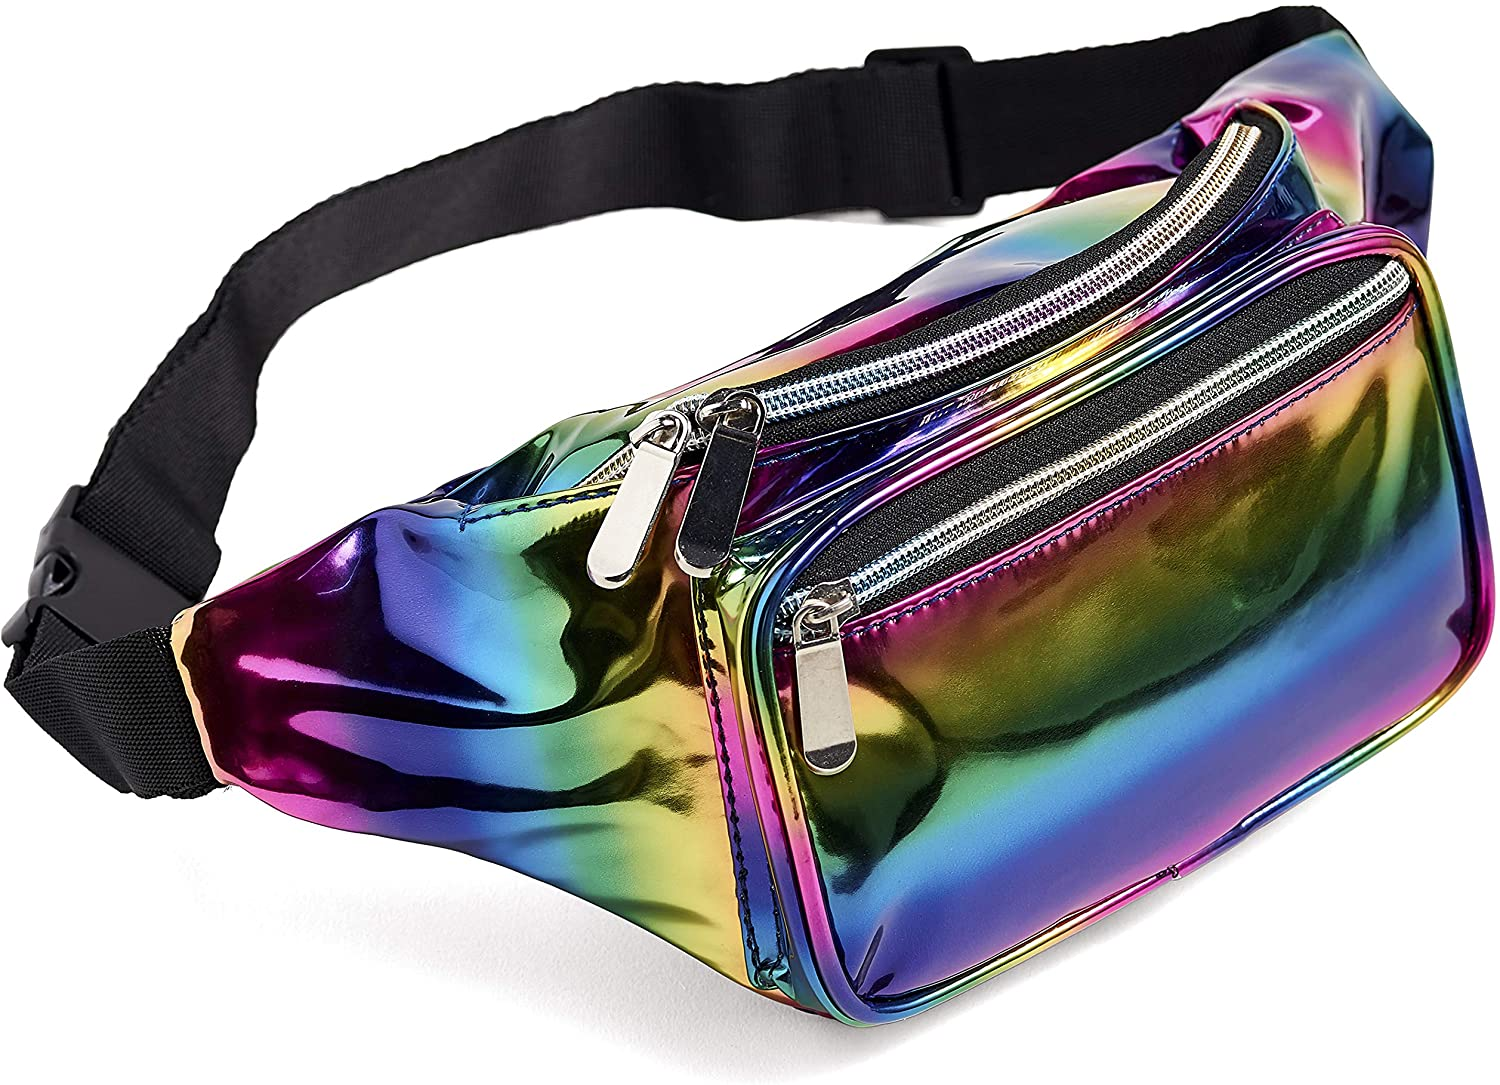 Rainbow Fanny Pack for Women Girls 80s Holographic Rave Festival Party Waist Belt Bags